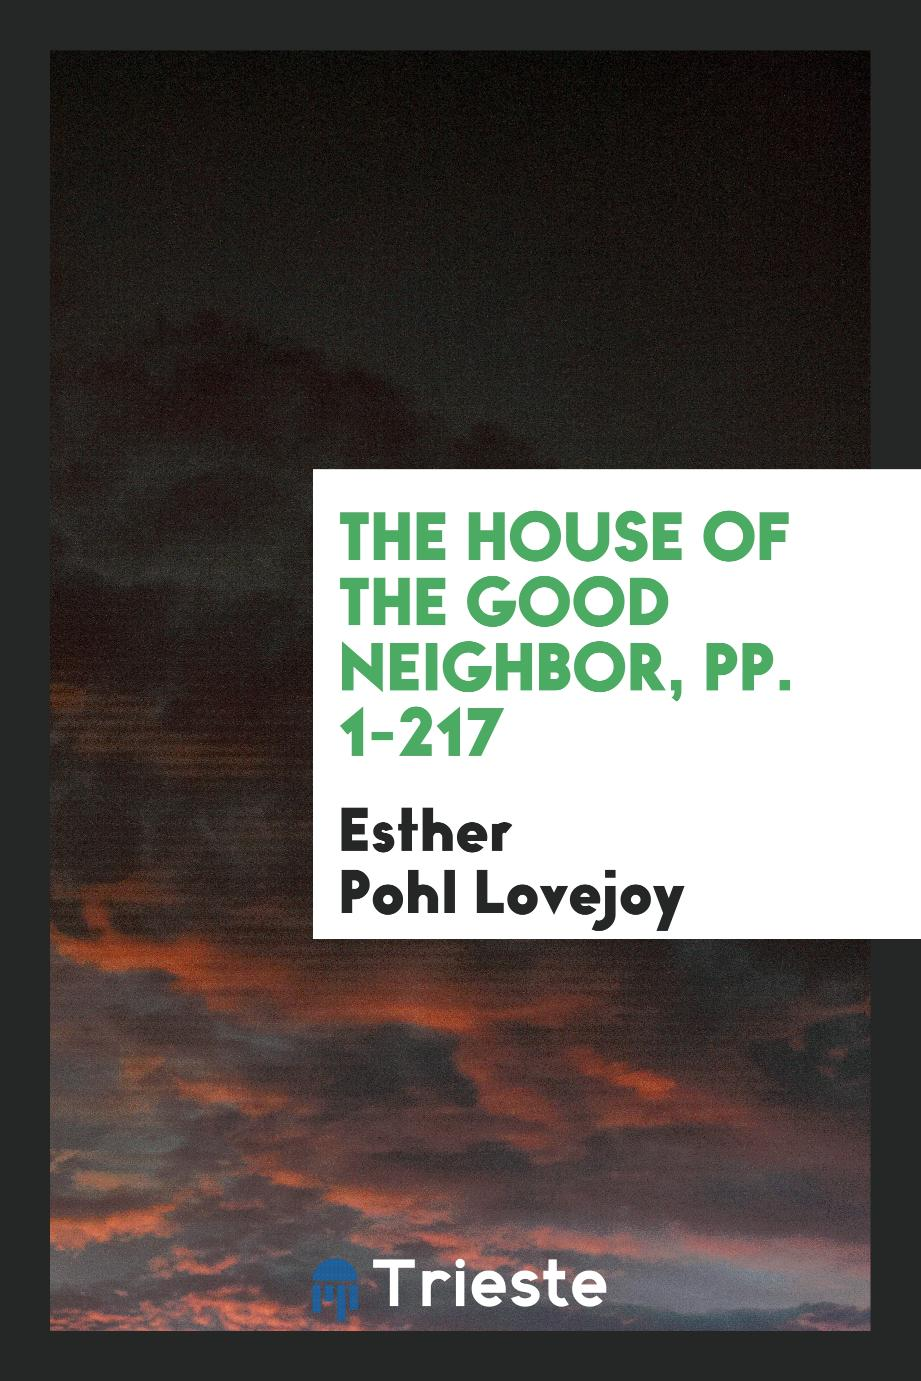 The House of the Good Neighbor, pp. 1-217